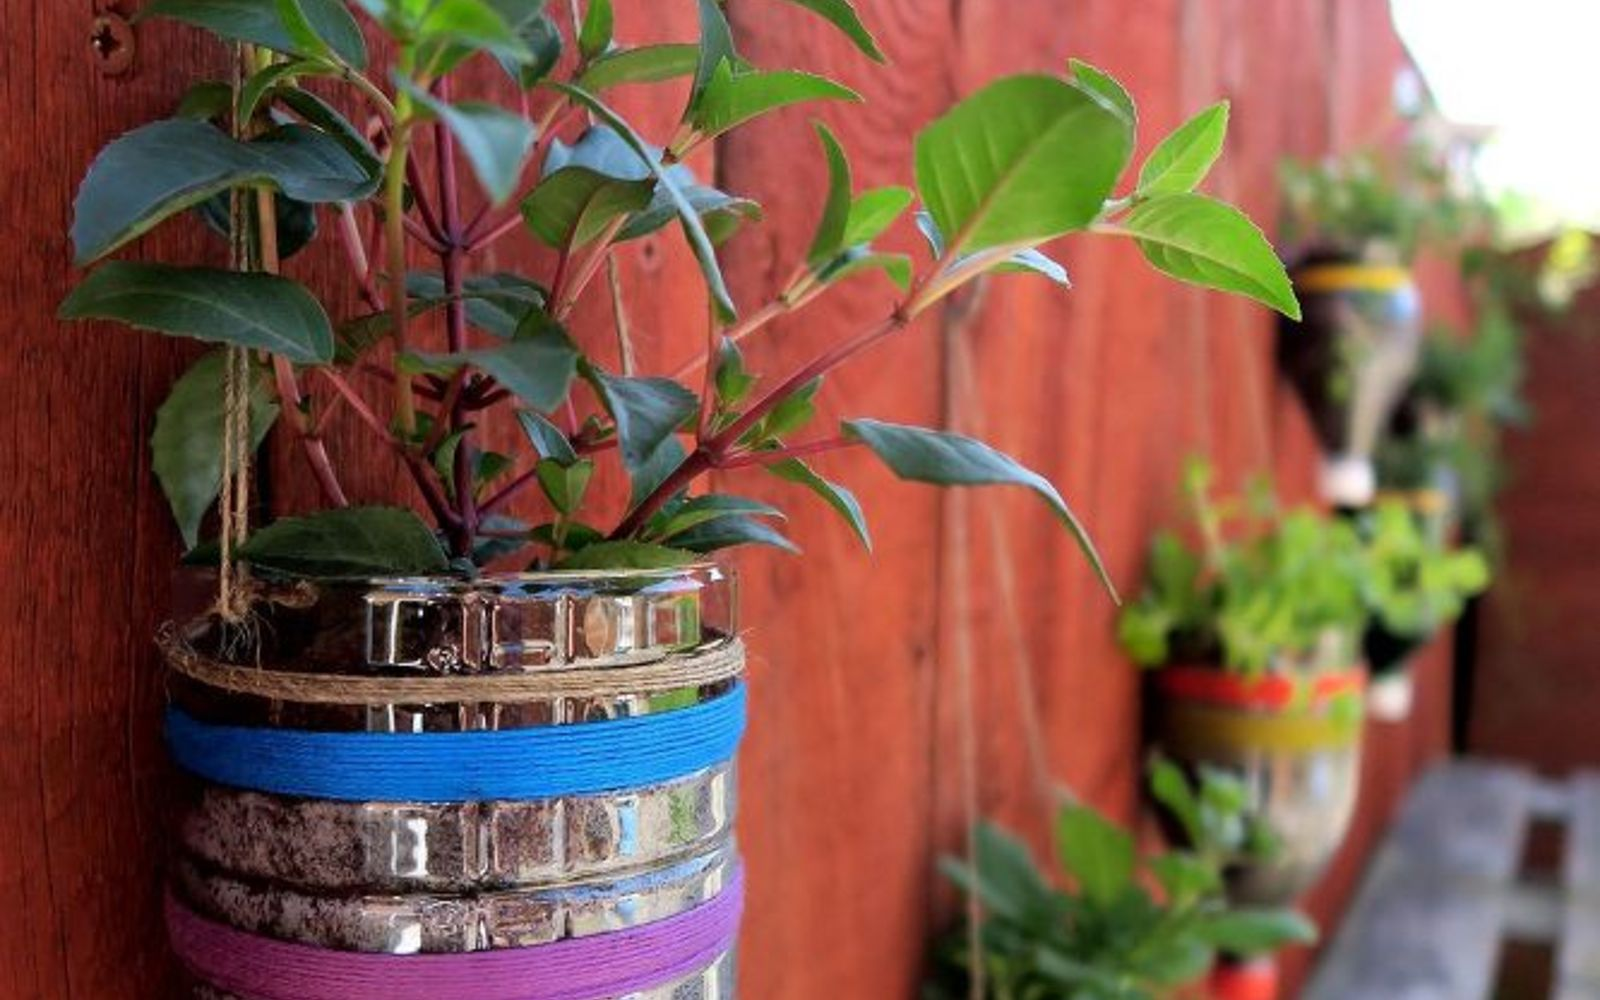 s 12 smarter ways to garden on a budget, container gardening, gardening, repurposing upcycling, Plant inside empty containers or recyclables